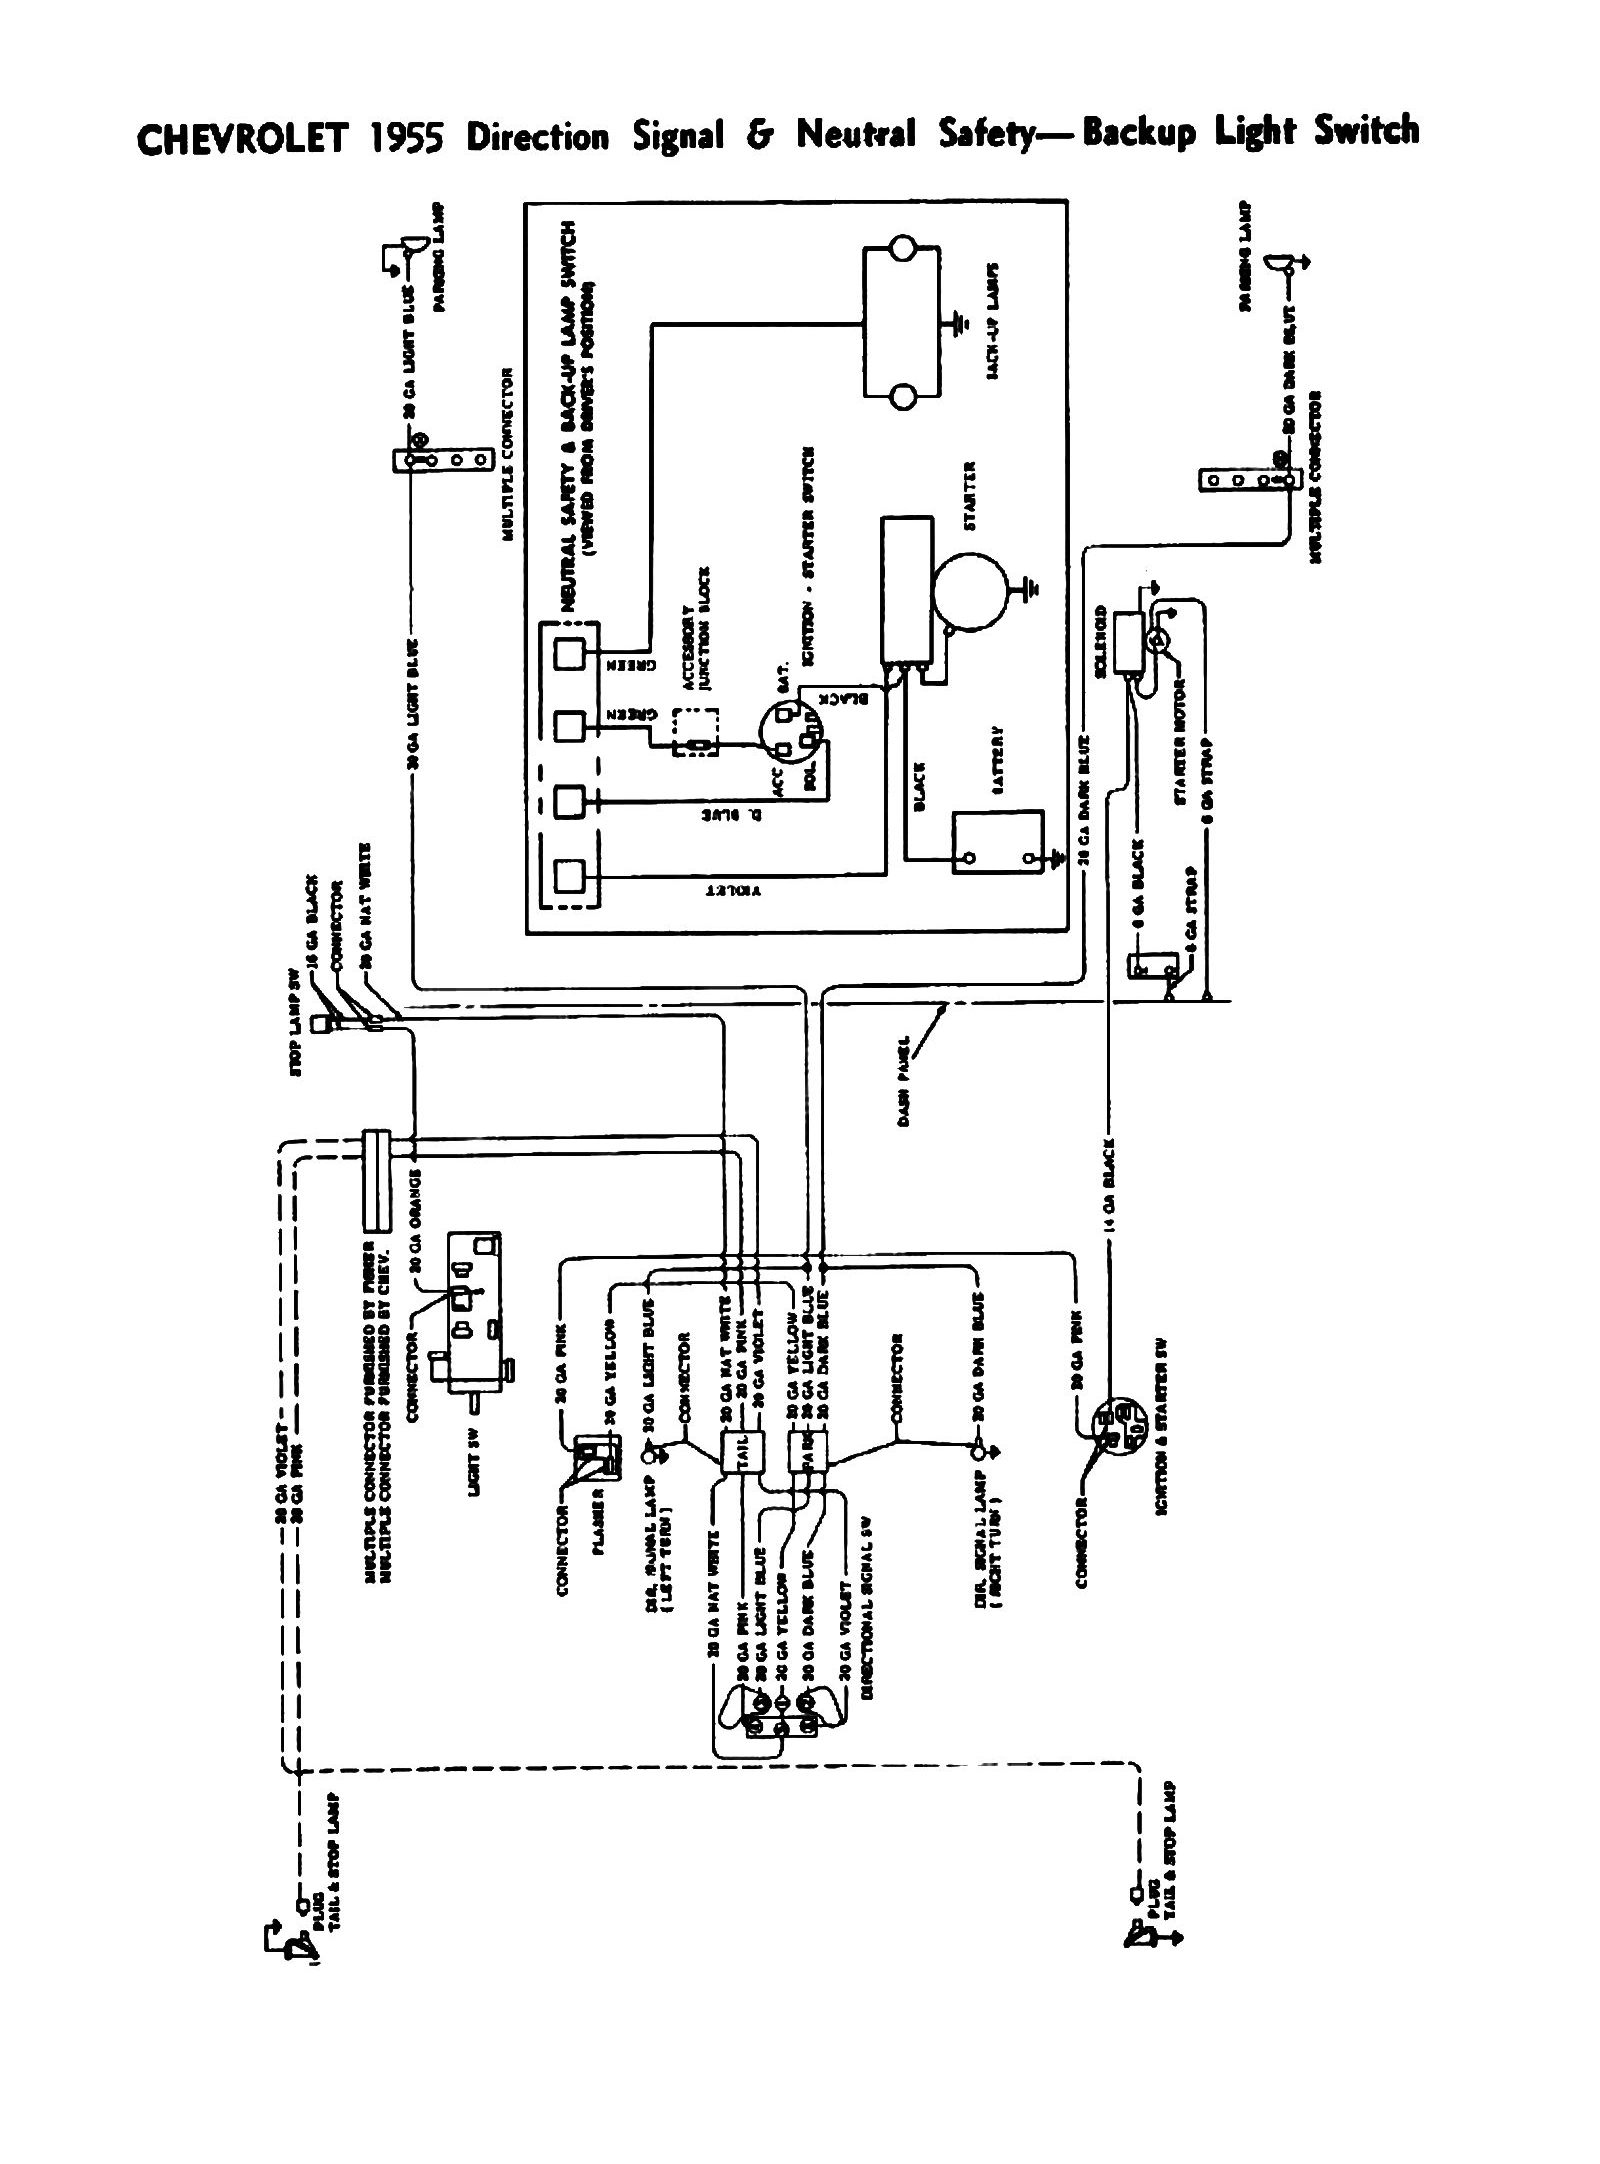 1978 chevy truck turn signal wiring diagram trusted wiring diagram u2022 rh soulmatestyle co